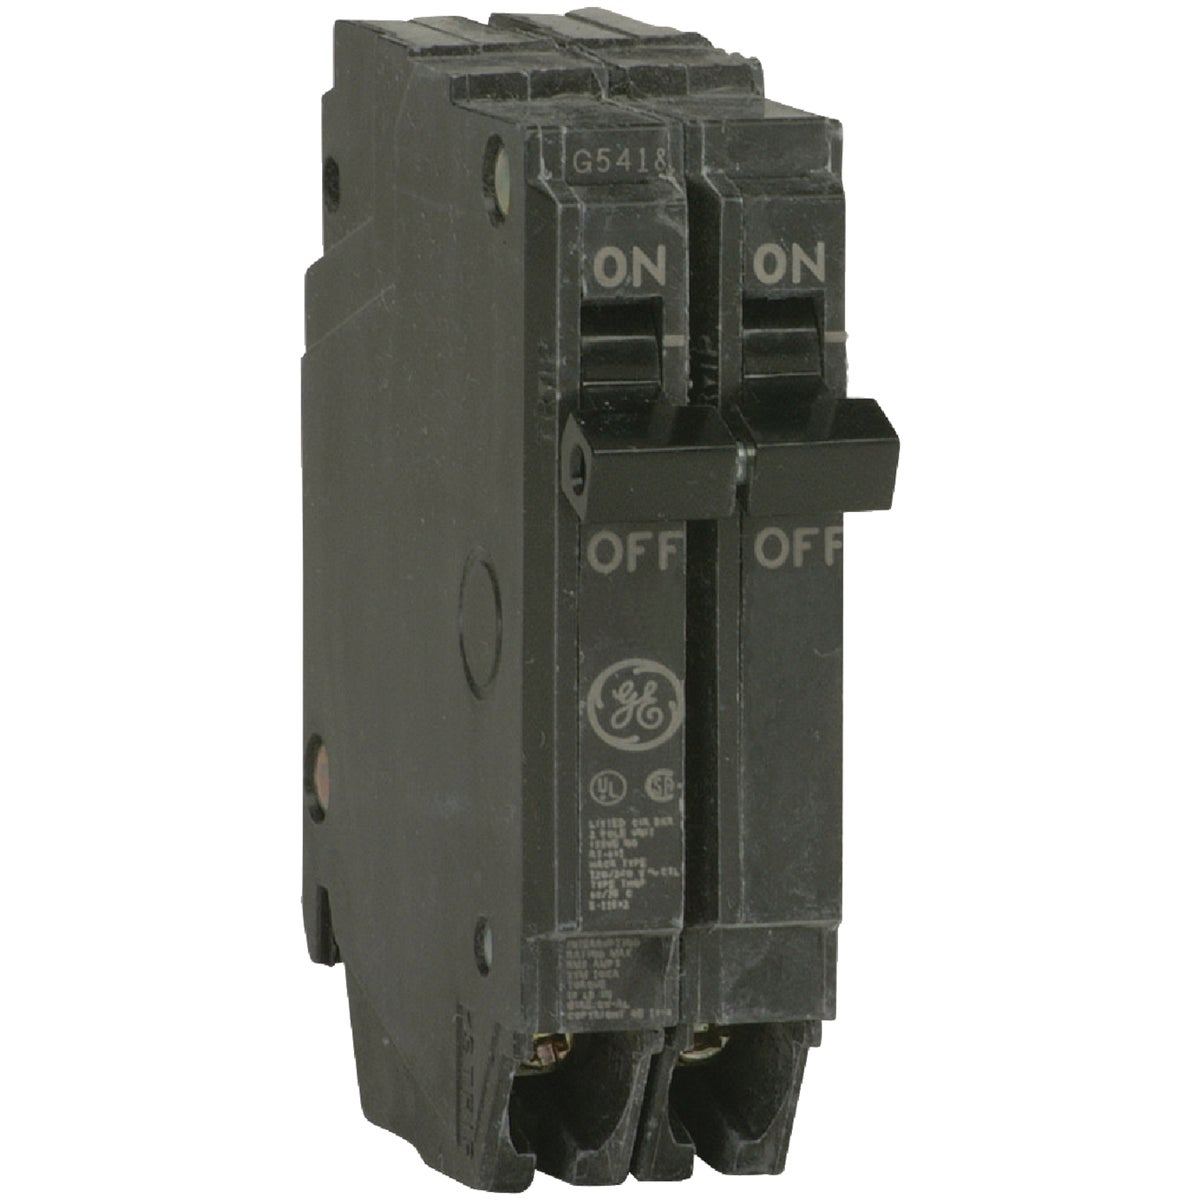 40A 2P CIRCUIT BREAKER - THQP240 by G E Industrial